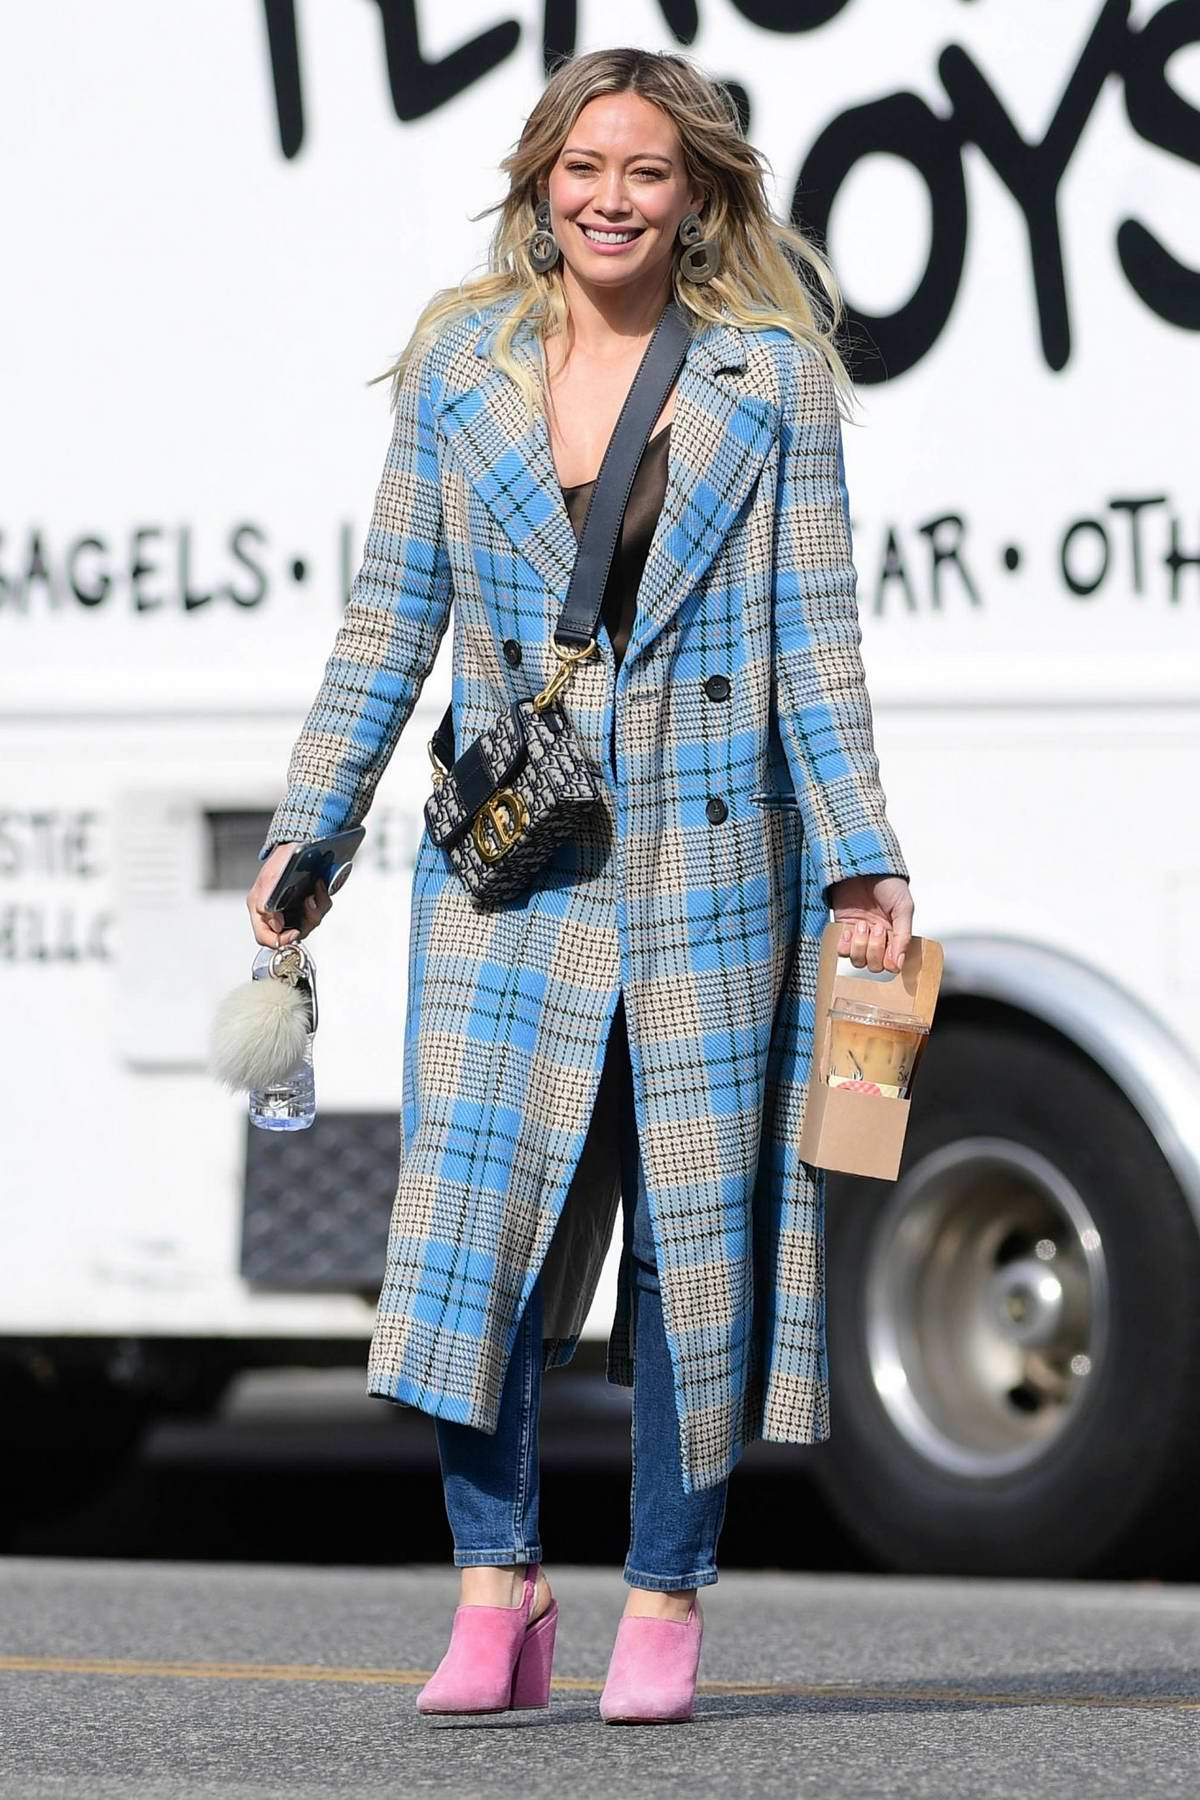 Hilary Duff is all smiles as steps in a blue plaid coat and pink shoes in Los Angeles